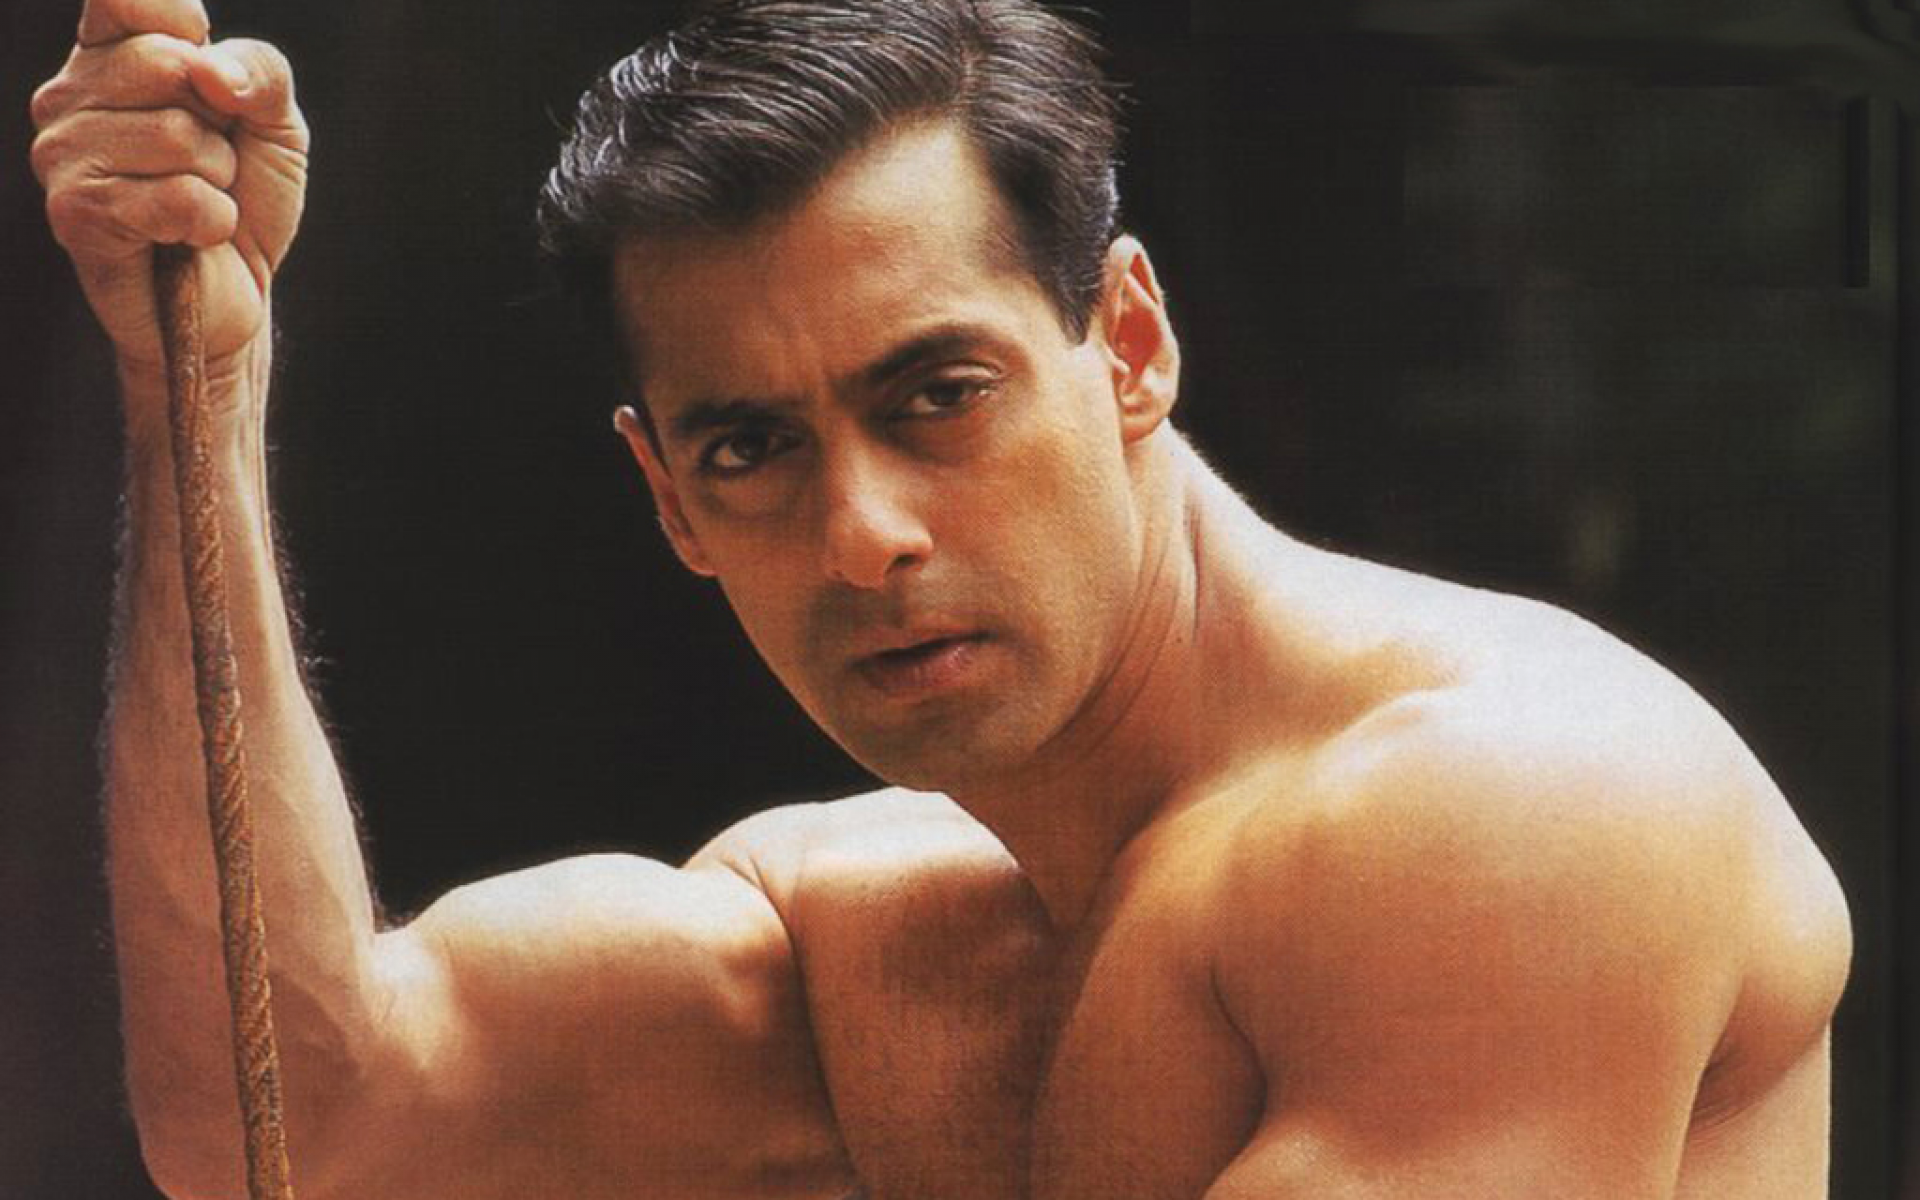 Salman Khan Wallpapers High Resolution And Quality Download